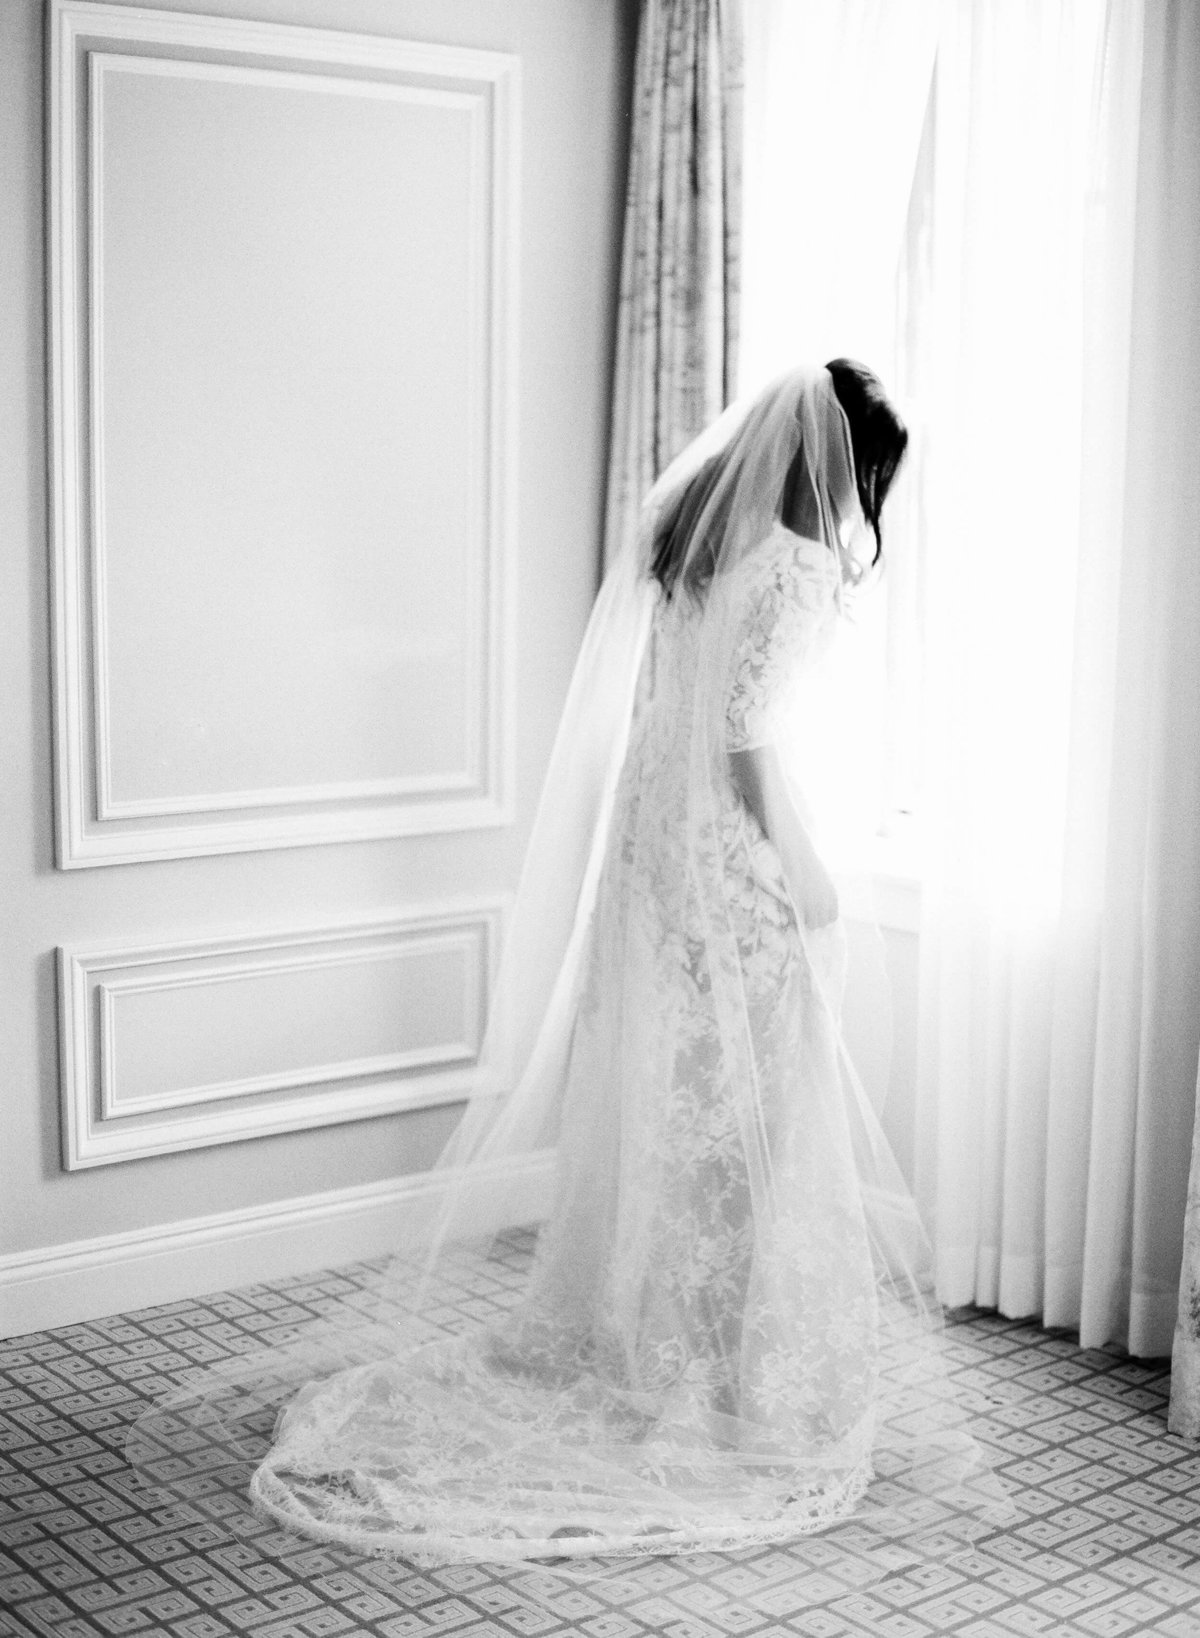 16-KTMerry-weddings-NaeemKhan-wedding-gown